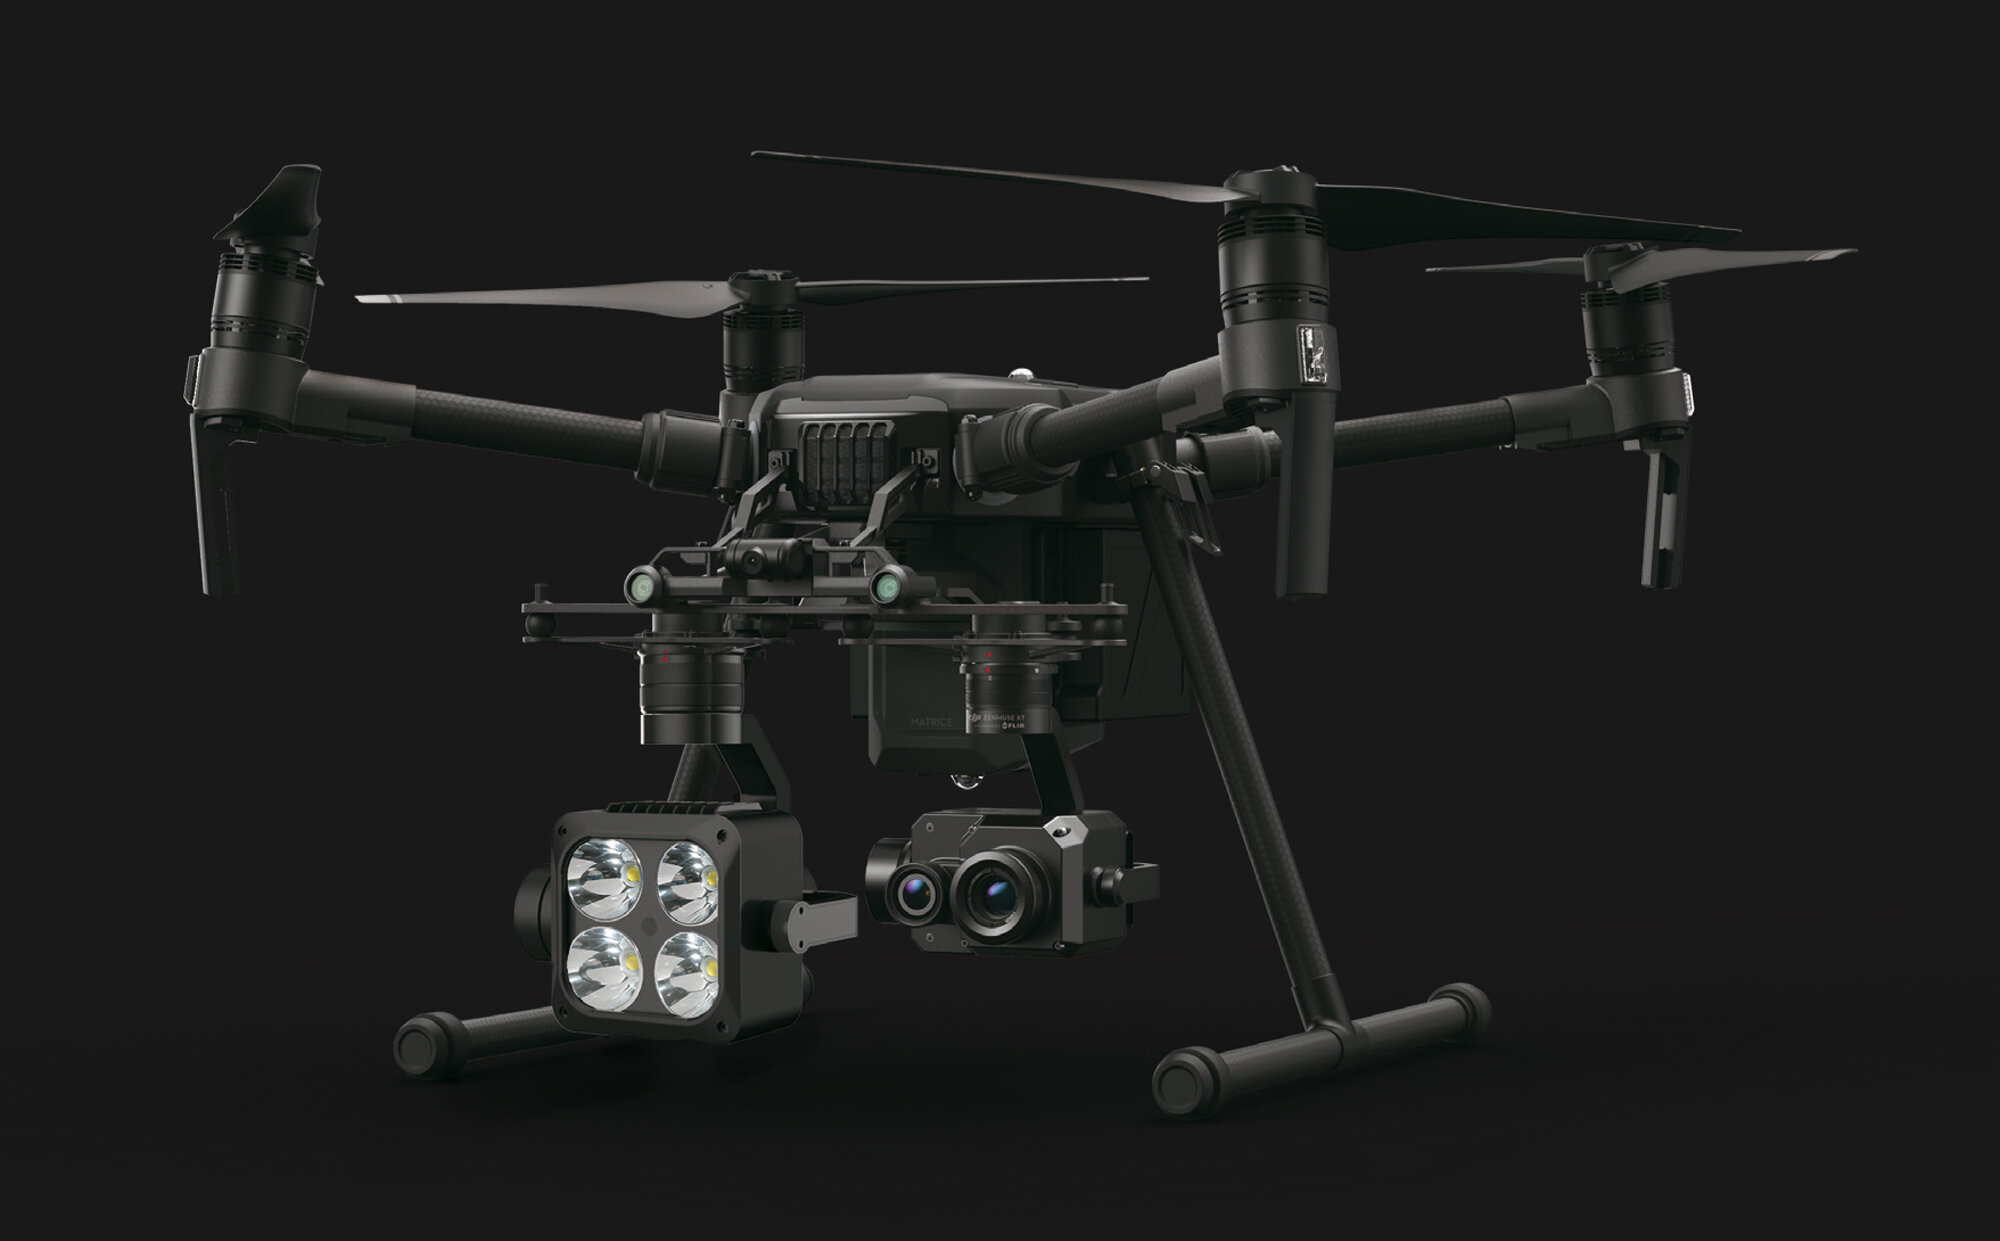 The Wingsland Z15 Gimbal Spotlight mounted to the Matrice